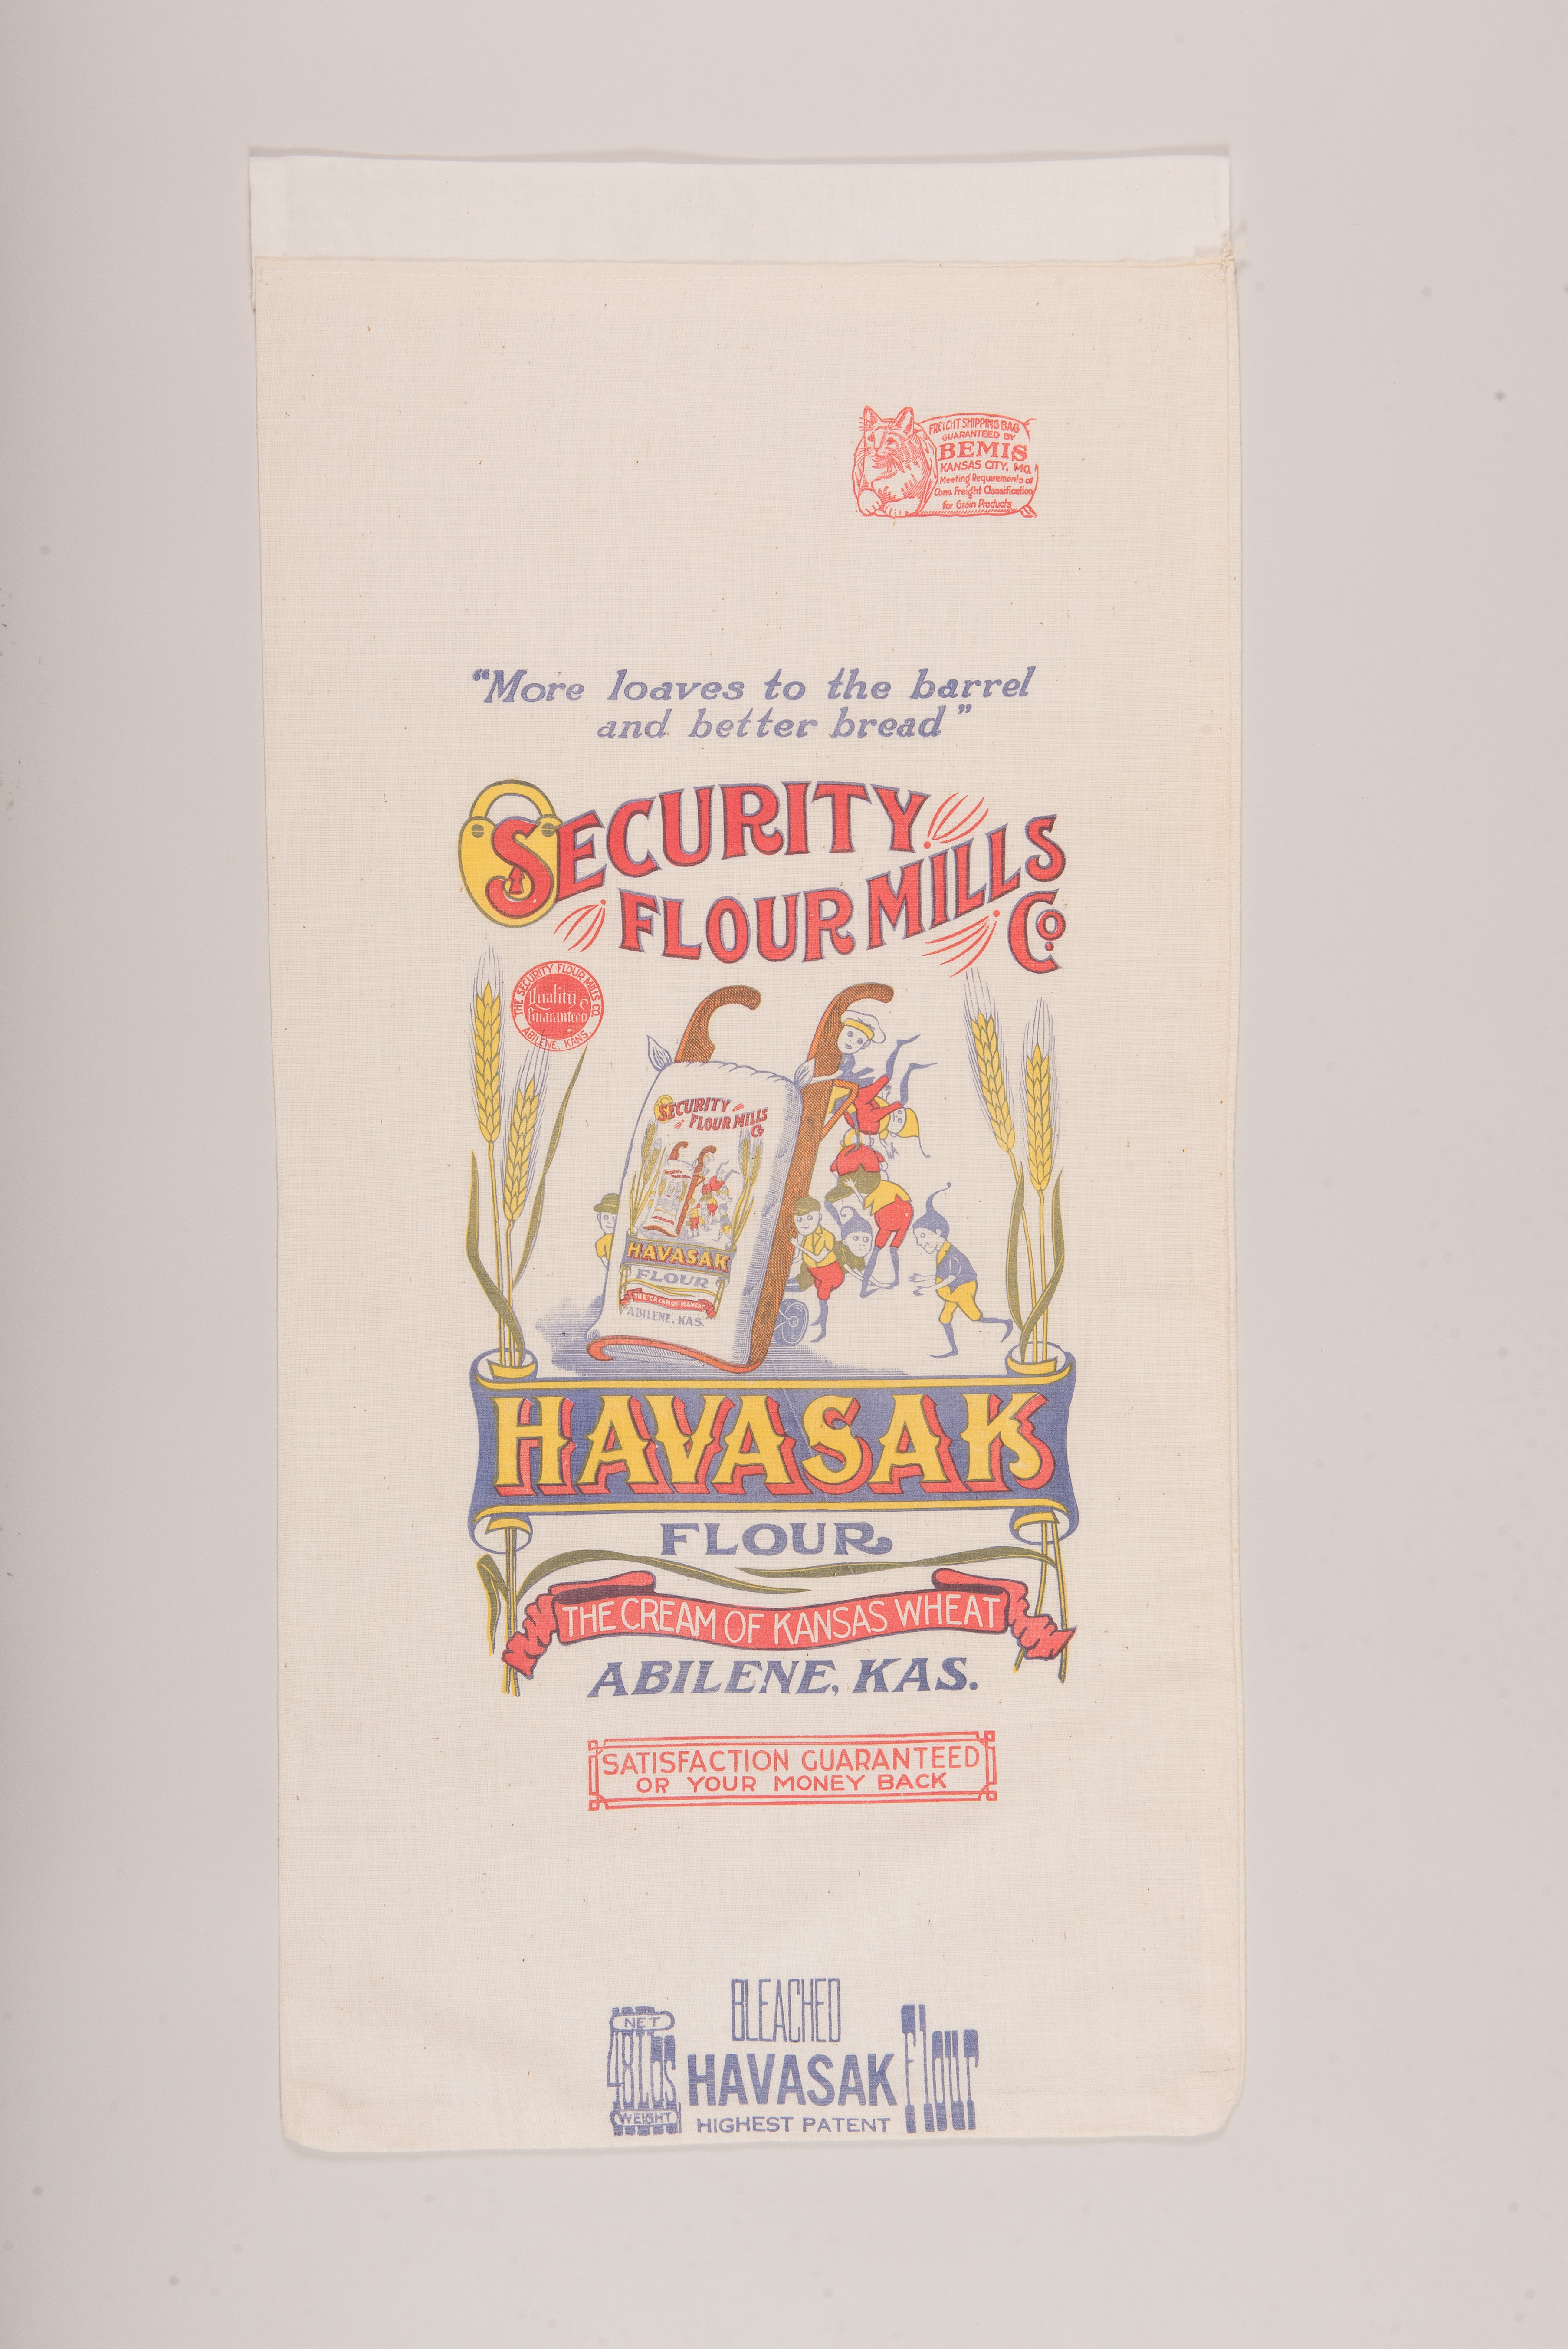 Flour from library exhibit